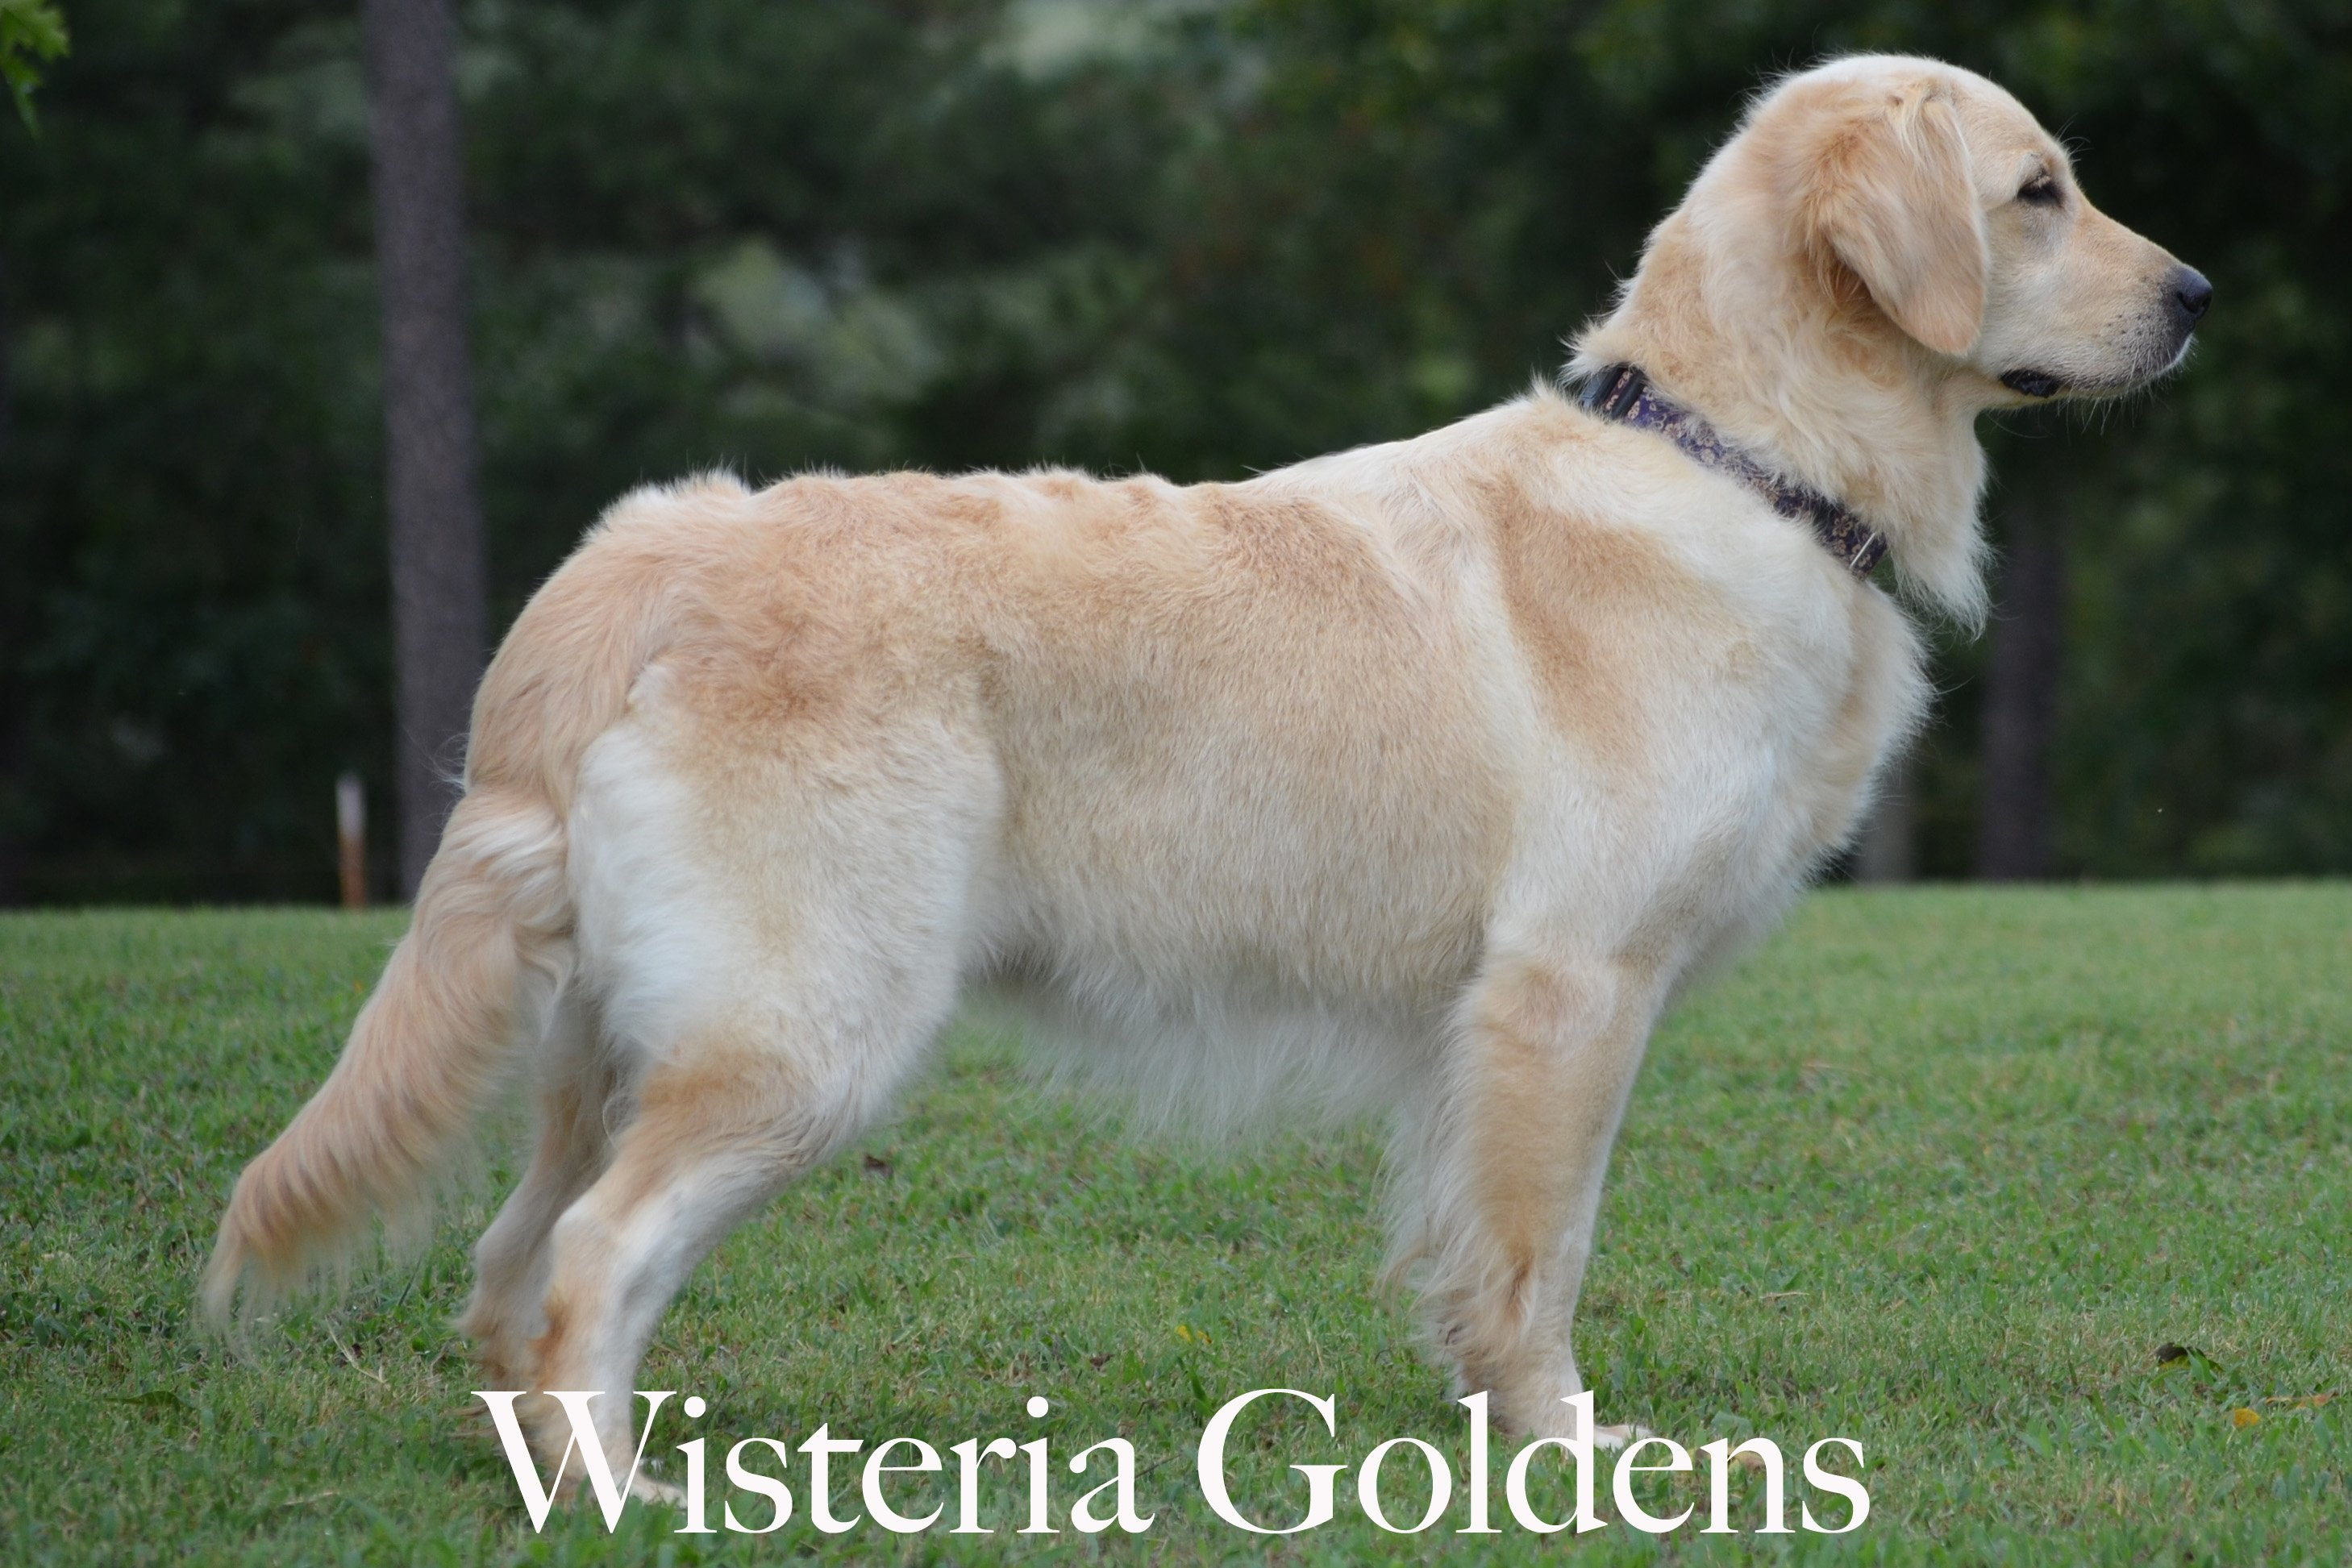 Honor_0155-full-english-creme-golden-retriever-wisteria-goldens